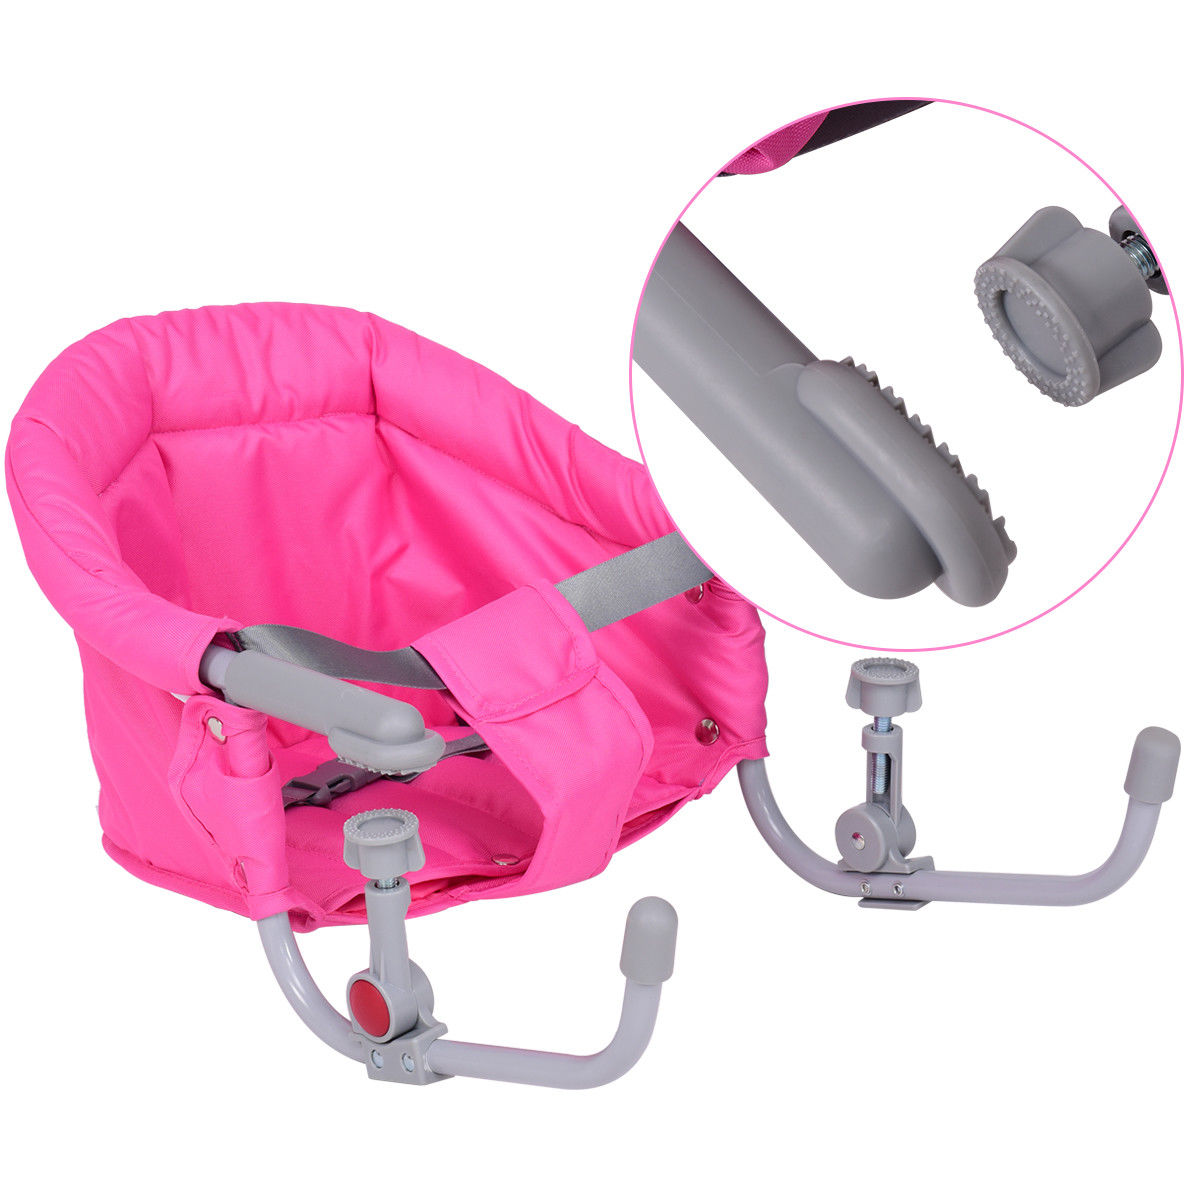 Gymax Portable Folding Baby Hook On Clip On High Chair Booster Fast Table Seat Pink by Gymax